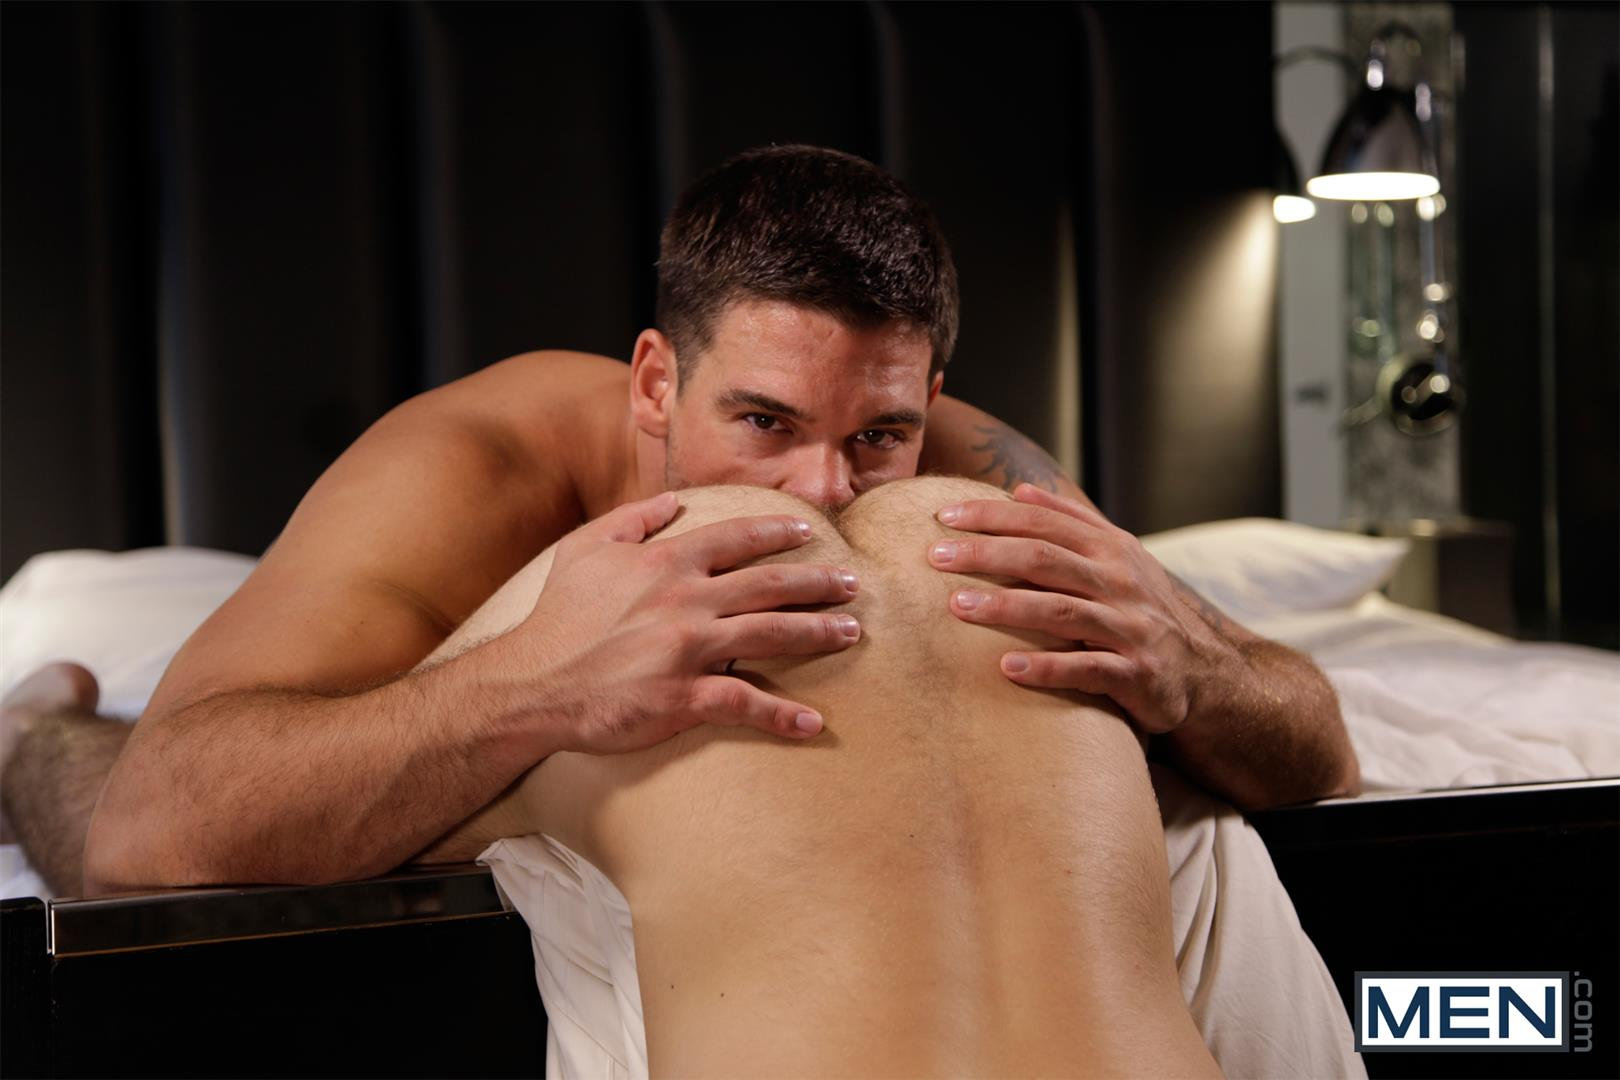 Men Derek Atlas and Jimmy Fanz Hairy Muscle Hunks Big Cocks Fucking Amateur Gay Porn 13 Hairy Muscle Hunk Derek Atlas Bottoms For Big Cock Jimmy Fanz